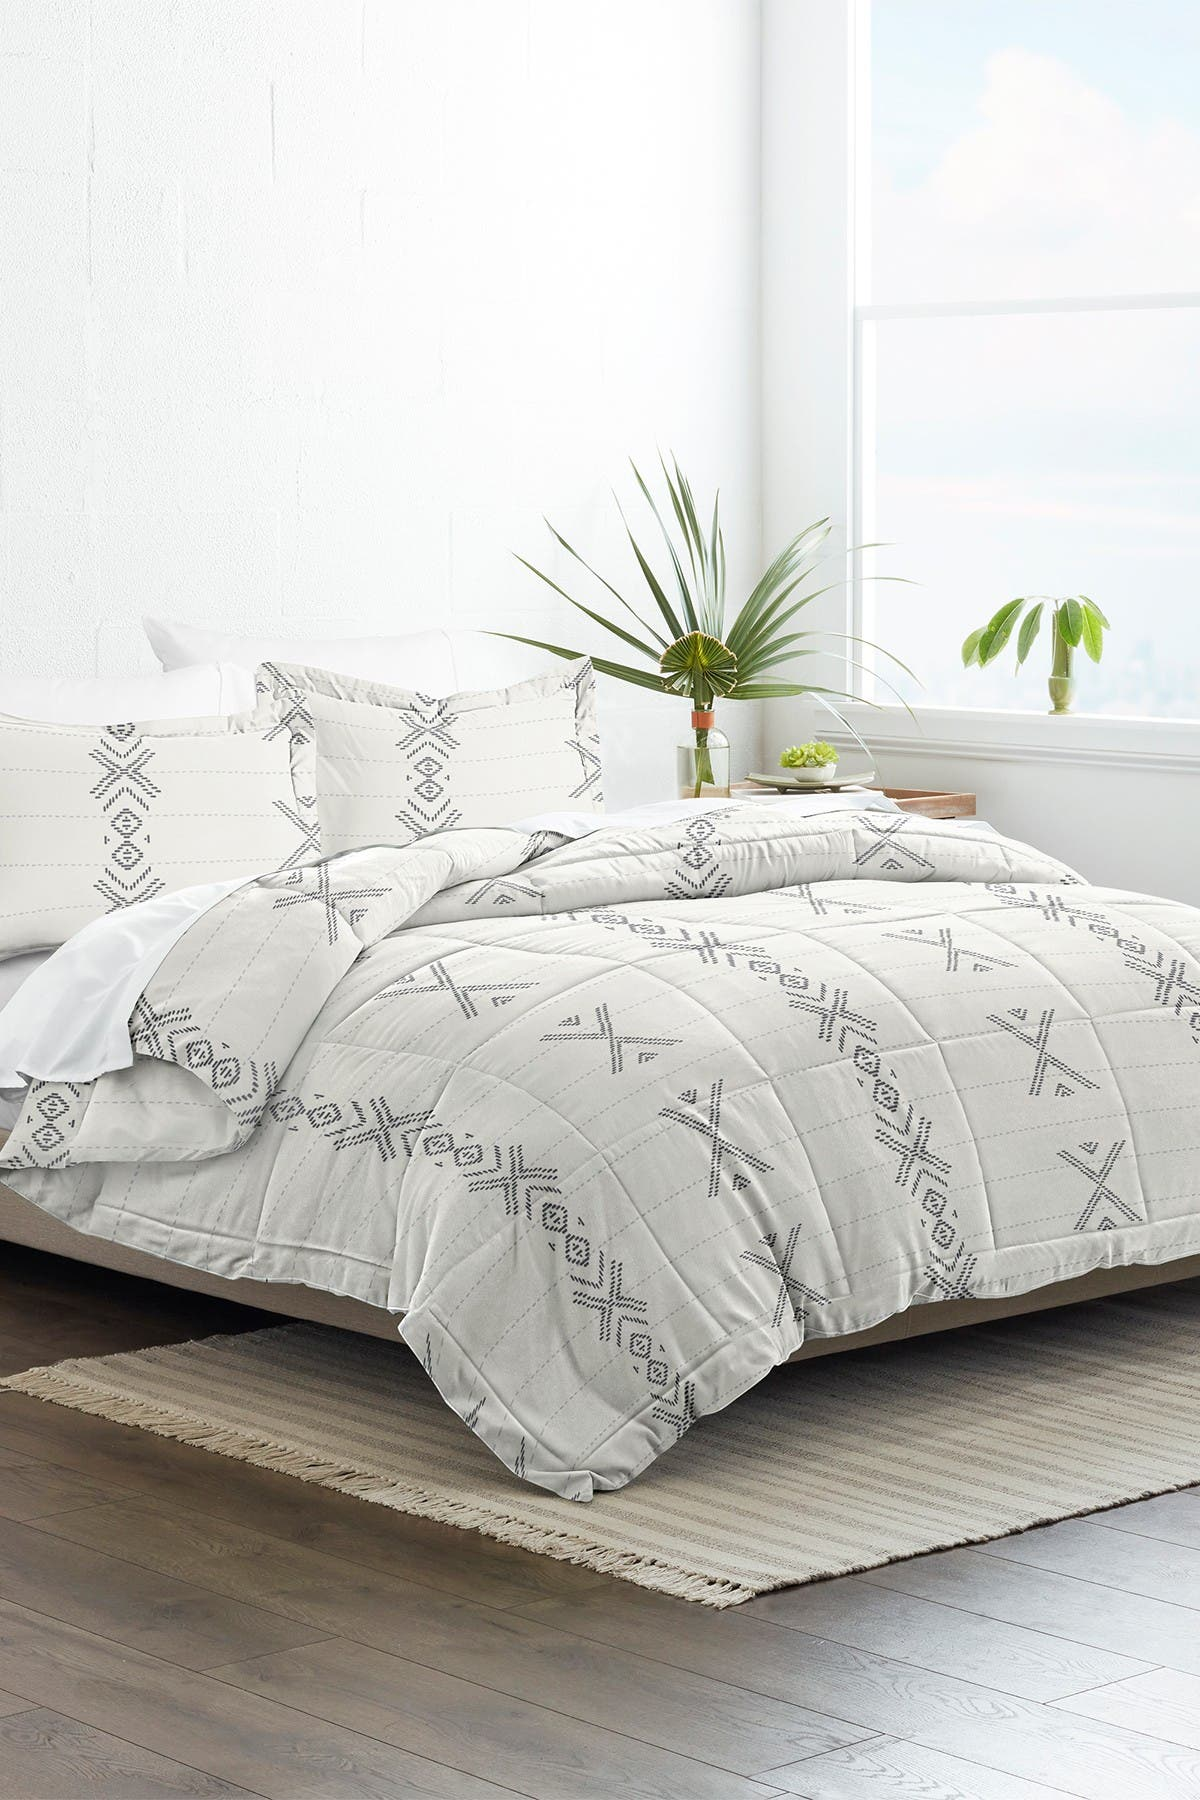 Image of IENJOY HOME Home Collection Premium Down Alternative Urban Stitch Patterned Full/Queen Comforter 3-Piece Set - Gray